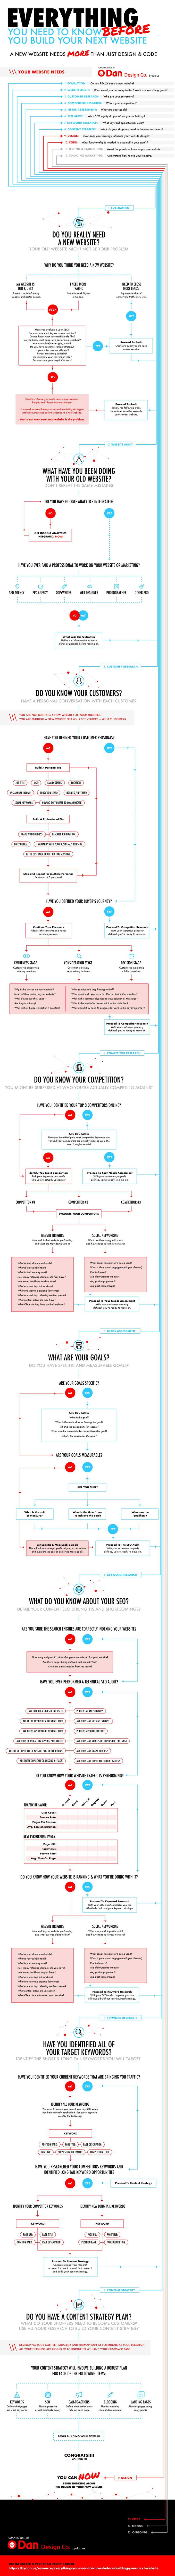 everything-you-need-to-know-for-your-next-website-full-infograph